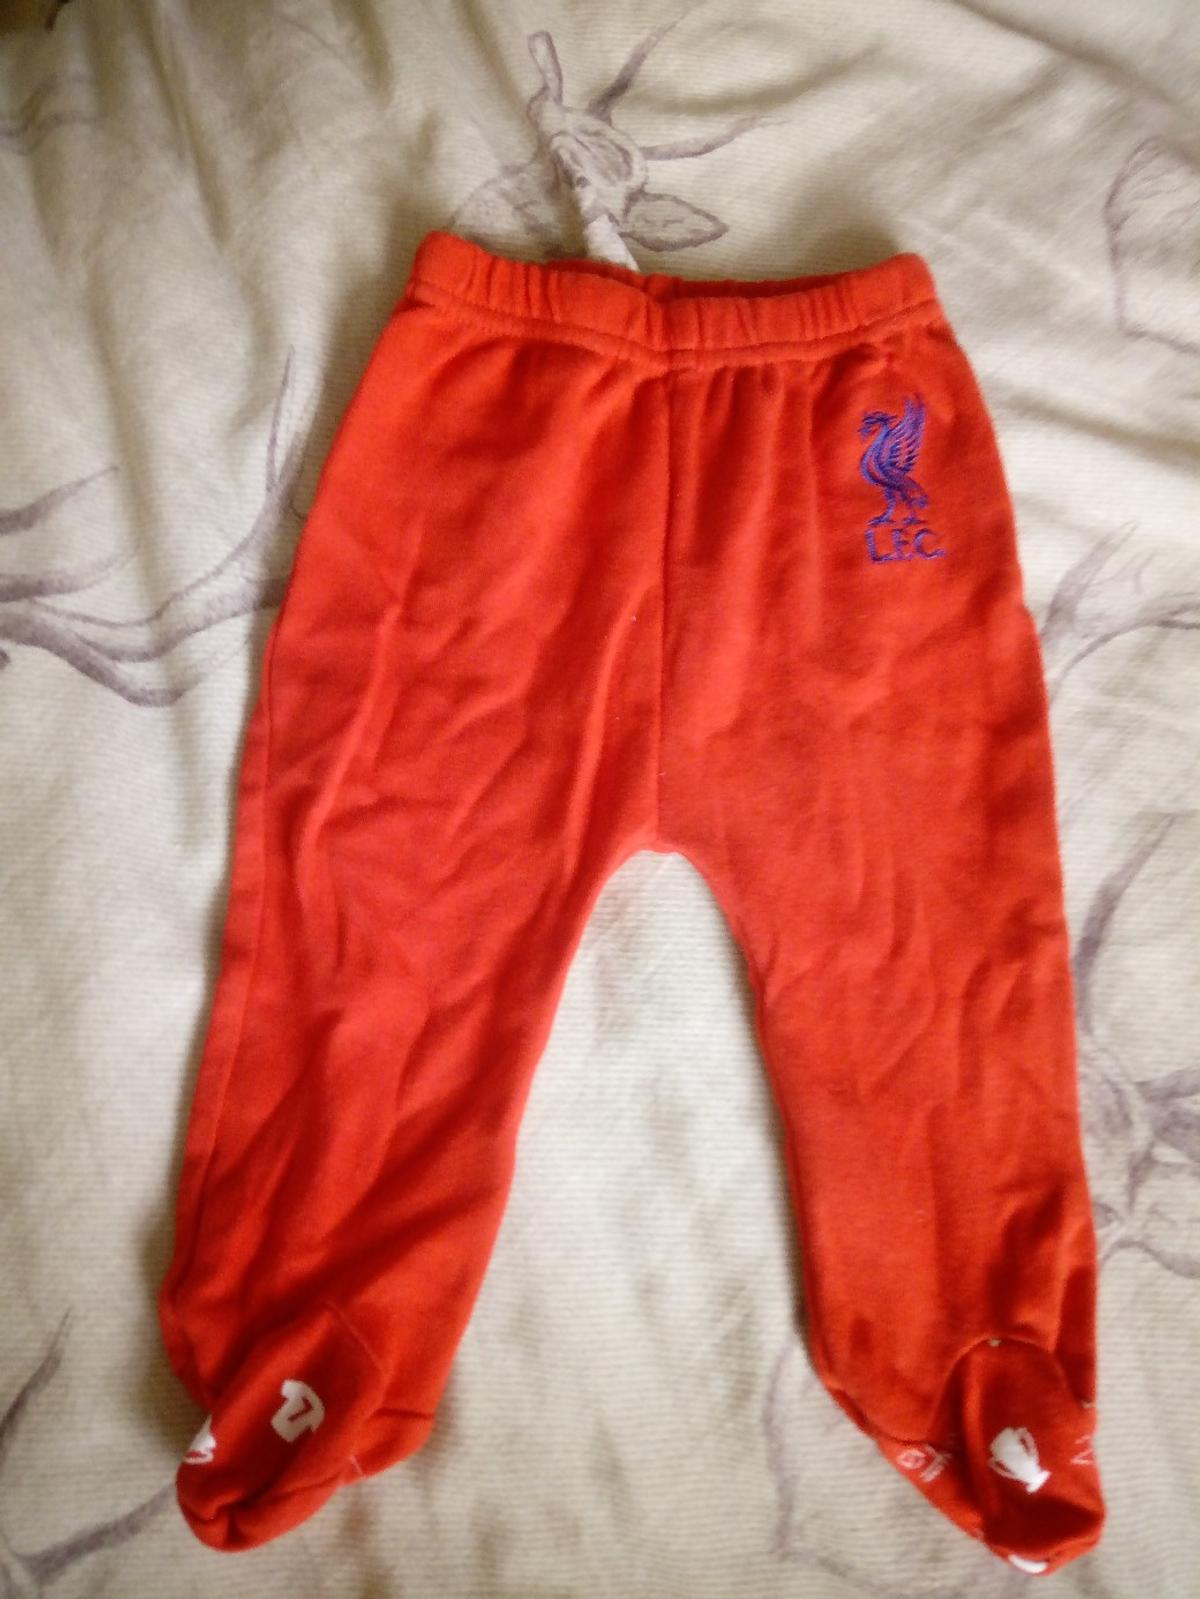 official LFC set. 0-3 months, good condition. check out other listings.